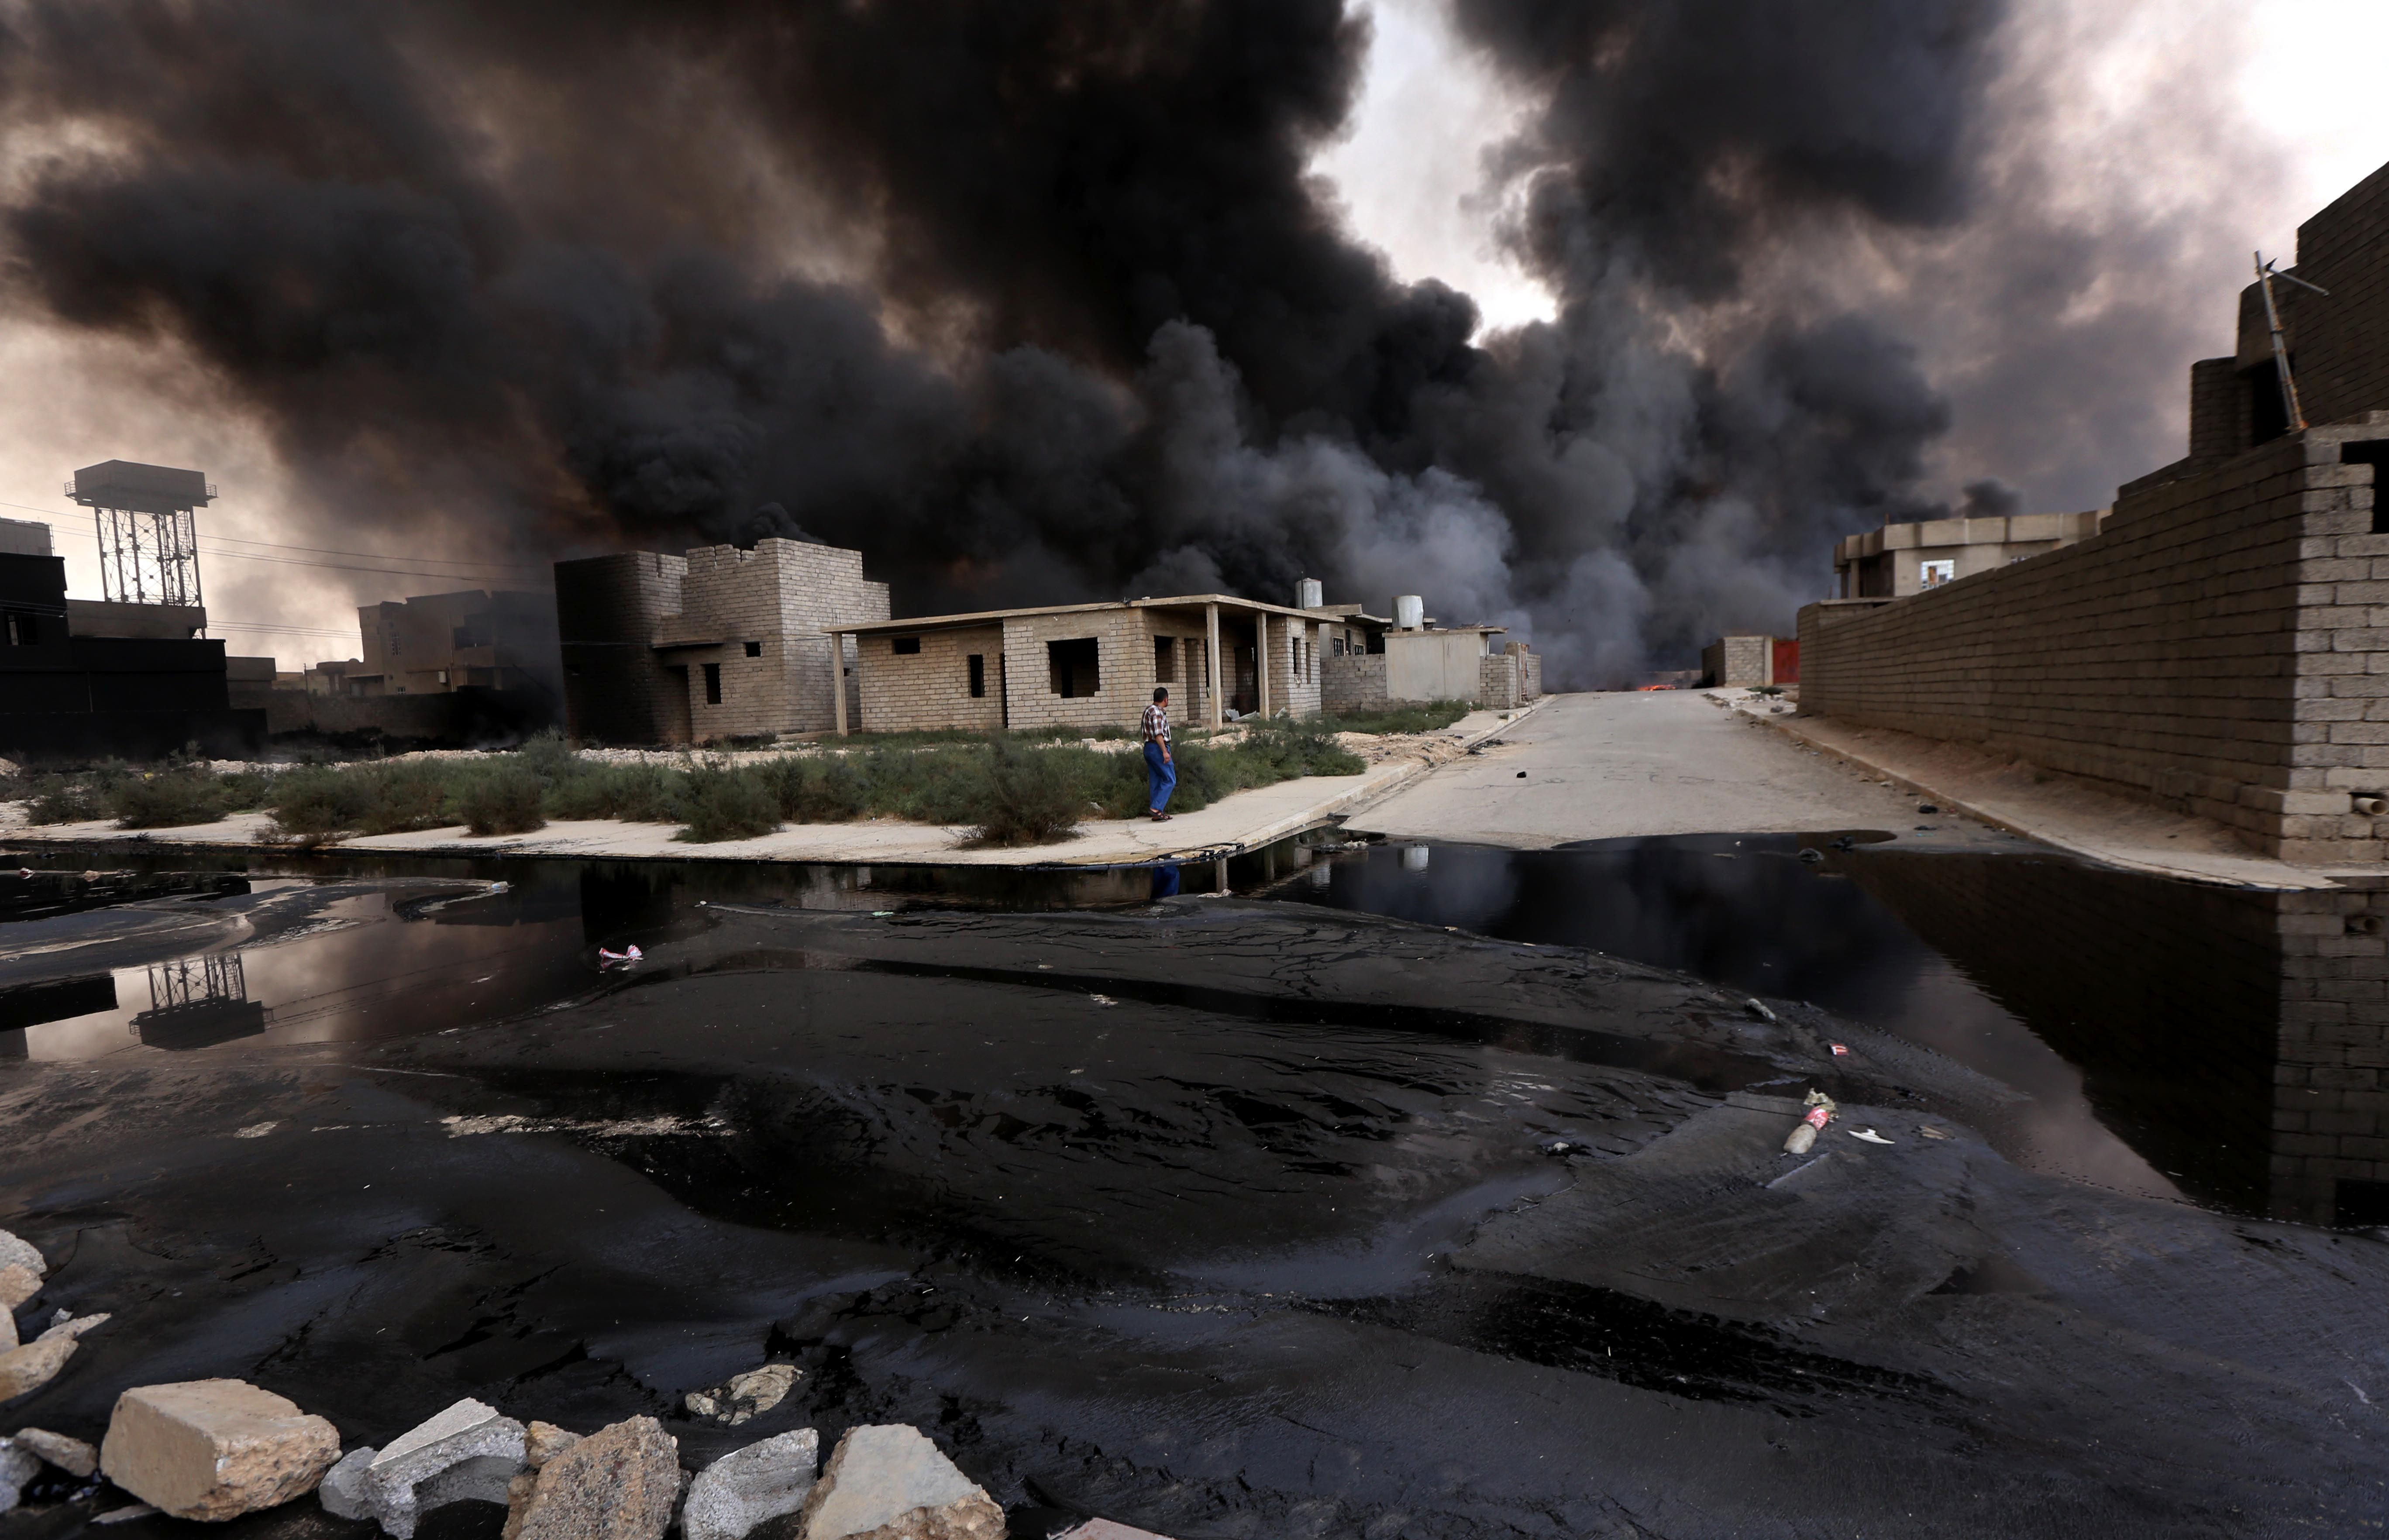 Smoke billows from oil wells, set ablaze by Islamic State militants before fleeing the Iraqi region of Qayyarah, on August 30, 2016.